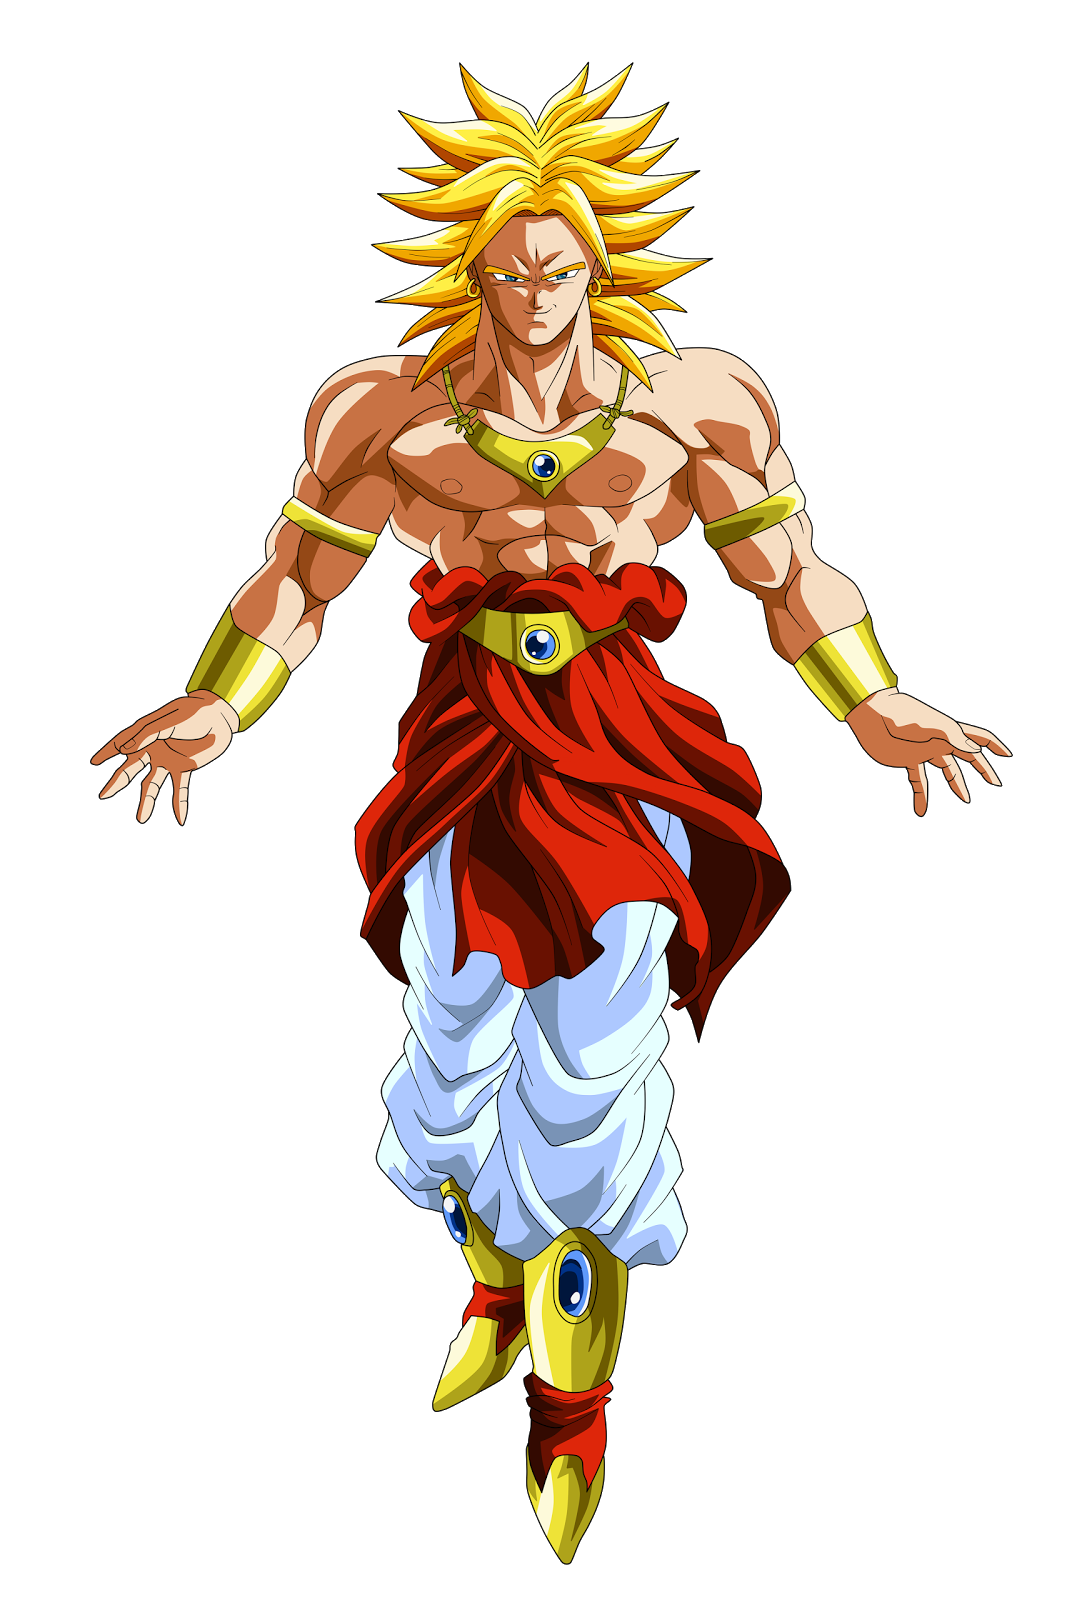 Dragon ball z gt imagenes png - Broly dragon ball gt ...